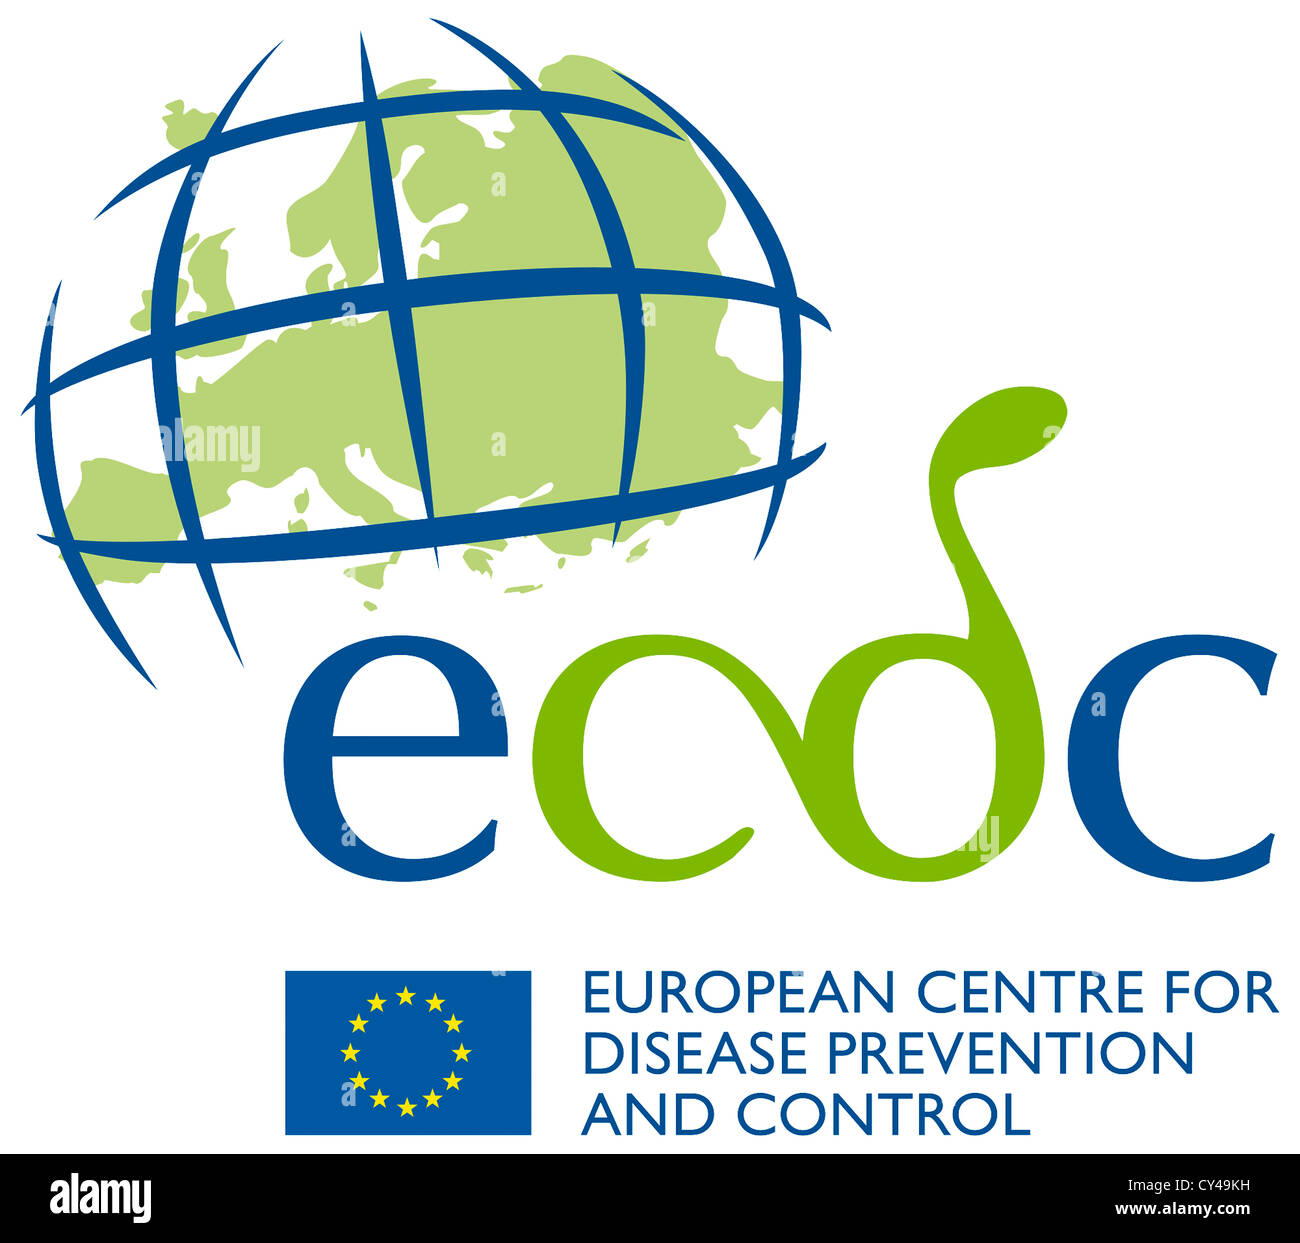 Logo of the European Centre for Disease Prevention and Control ECDC based in Solna near Stockholm. - Stock Image